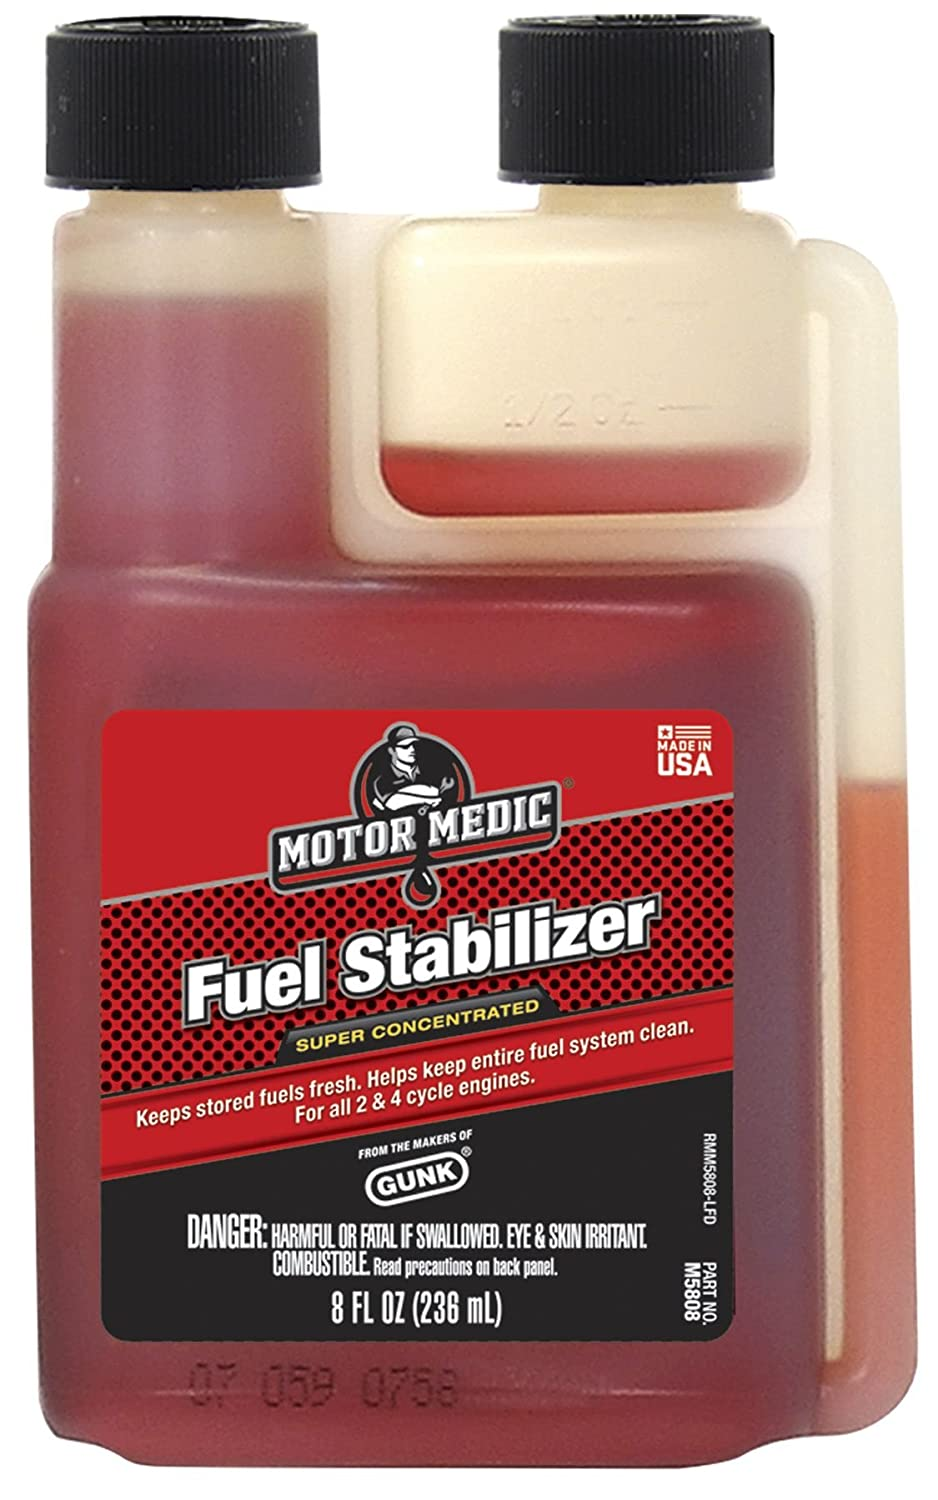 5. Motor Medic M5808/6 One Each, 8 oz.